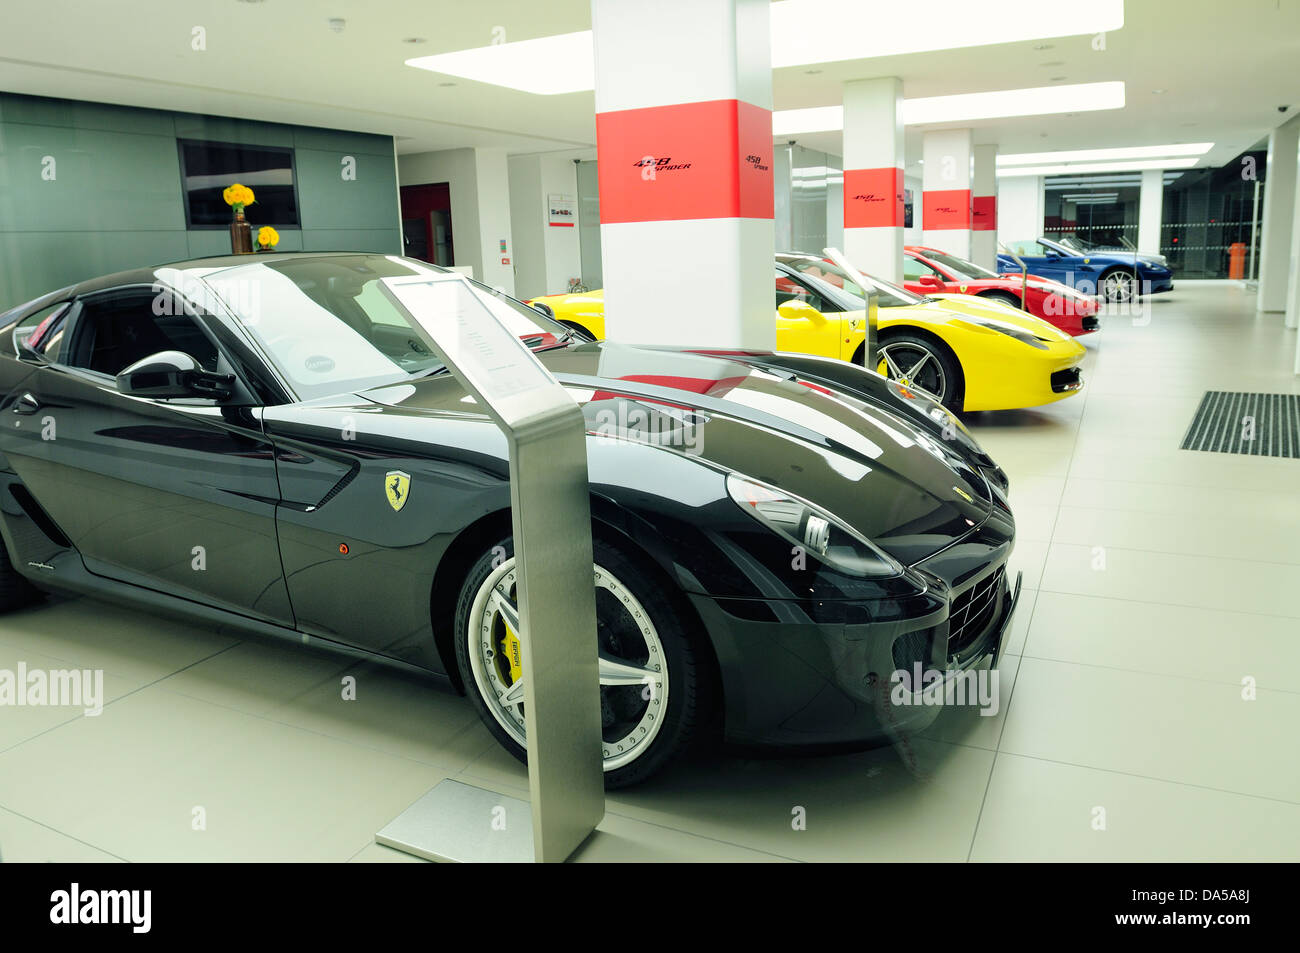 Ferrari Showroom Stock Photo Royalty Free Image Alamy